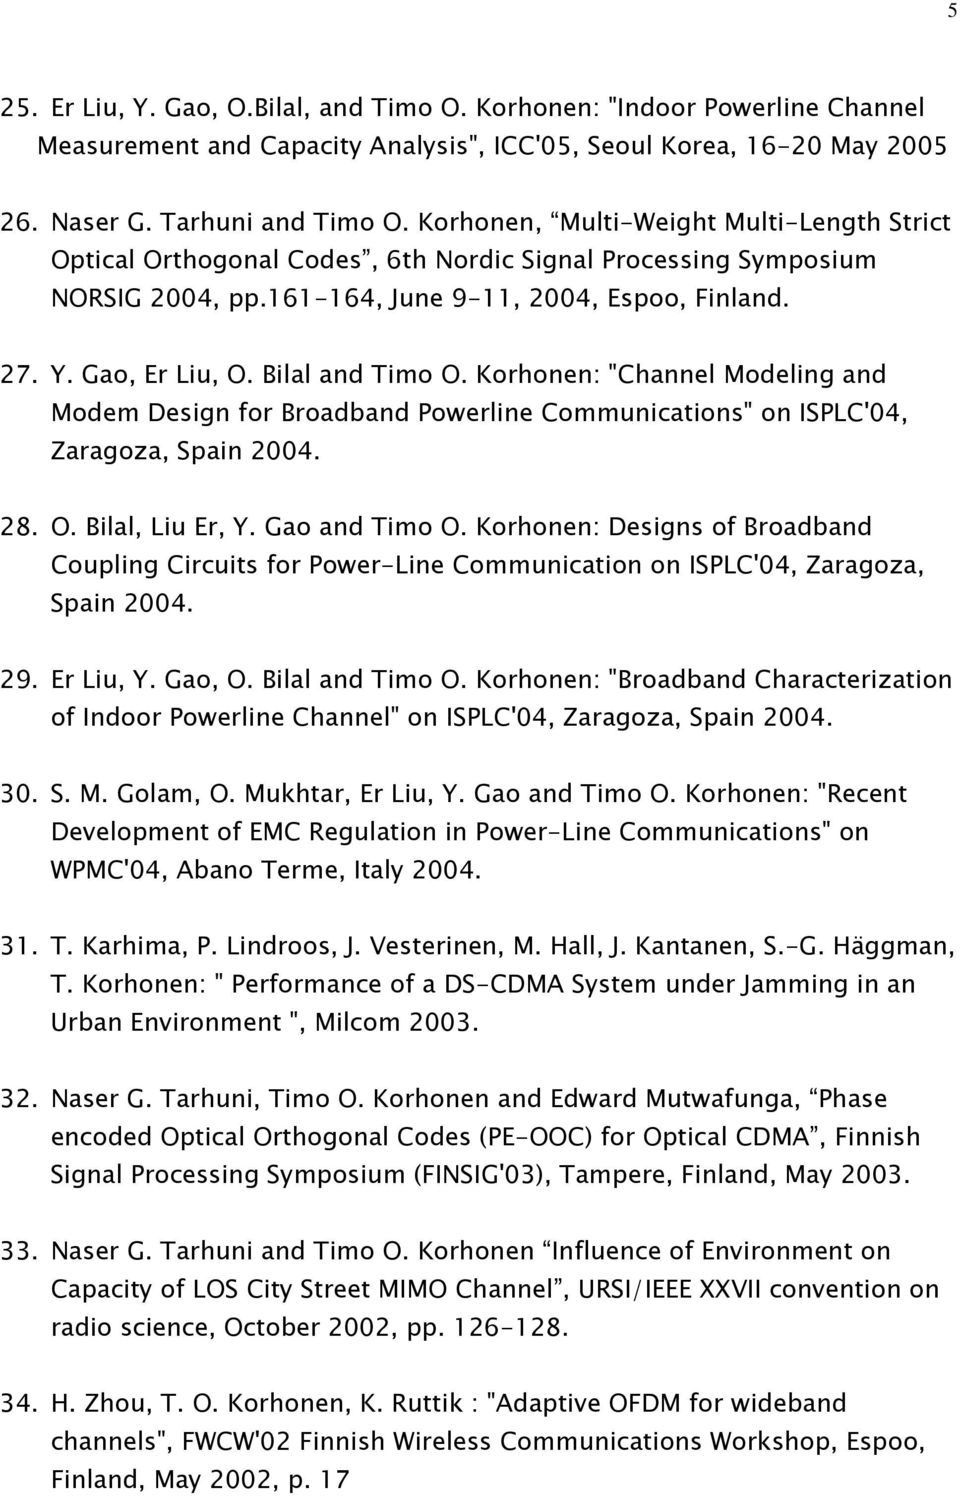 "Bilal and Timo O. Korhonen: ""Channel Modeling and Modem Design for Broadband Powerline Communications"" on ISPLC'04, Zaragoza, Spain 2004. 28. O. Bilal, Liu Er, Y. Gao and Timo O."